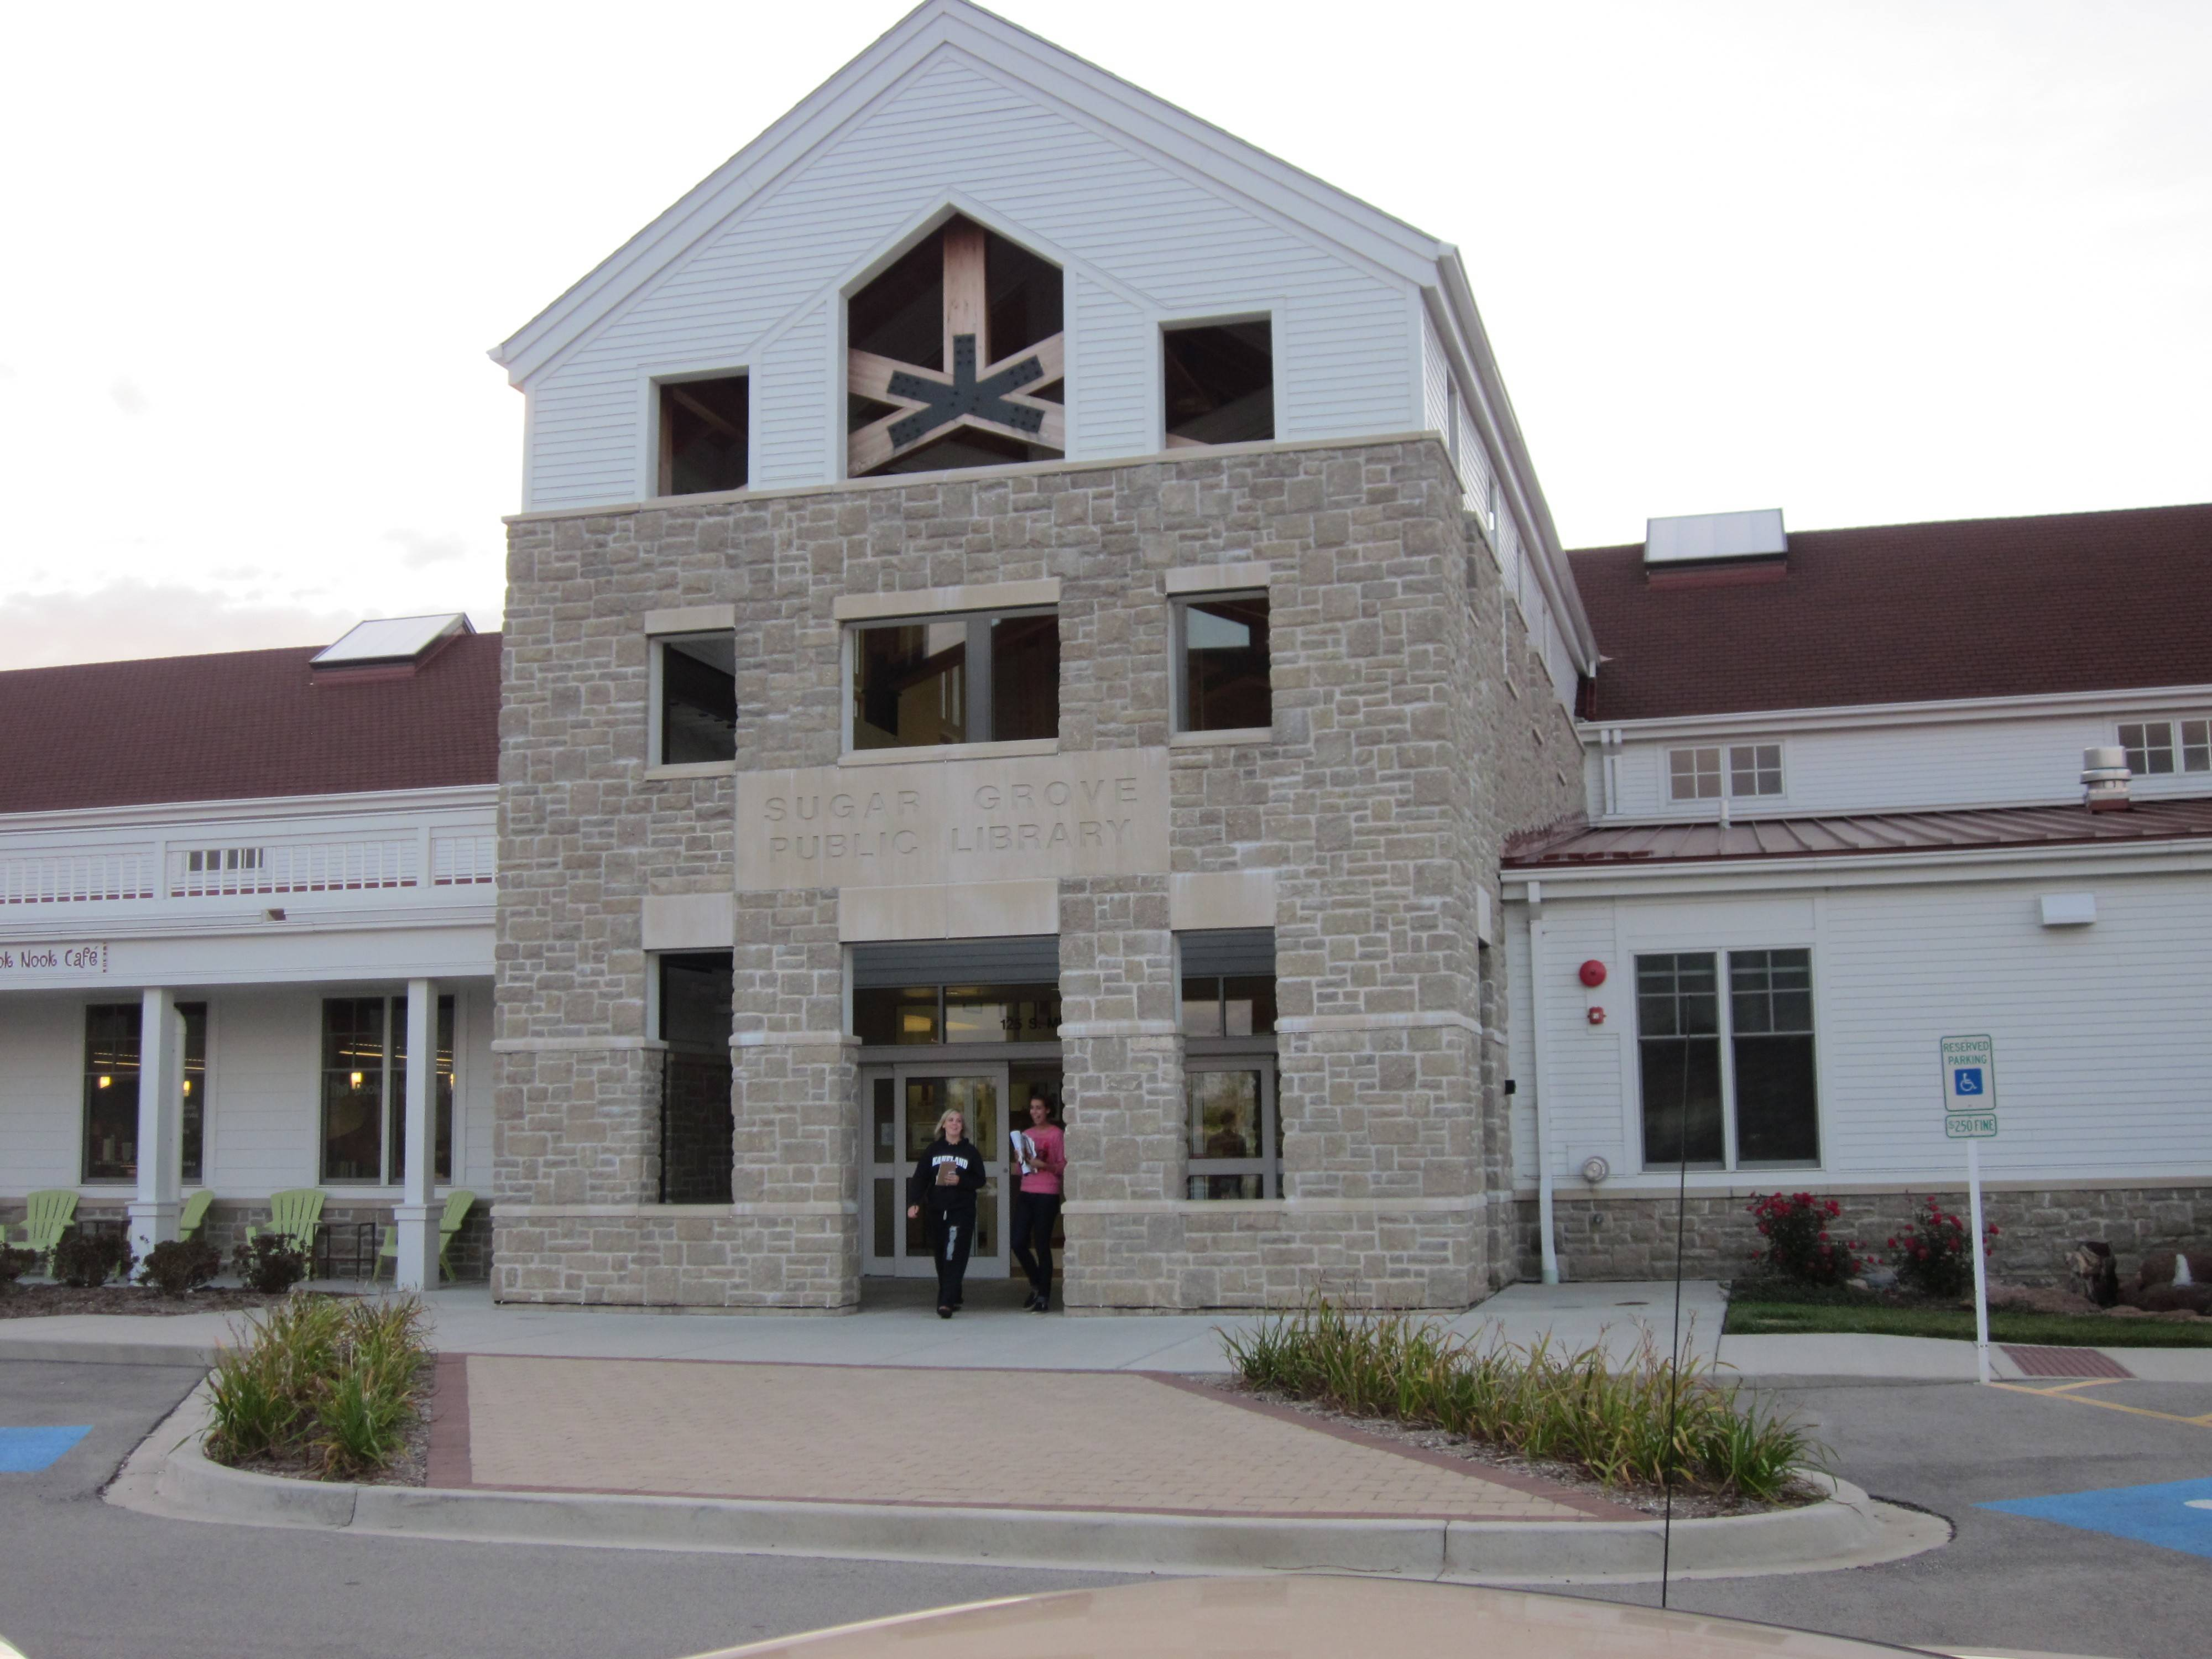 'No' to more taxes for Sugar Grove Library